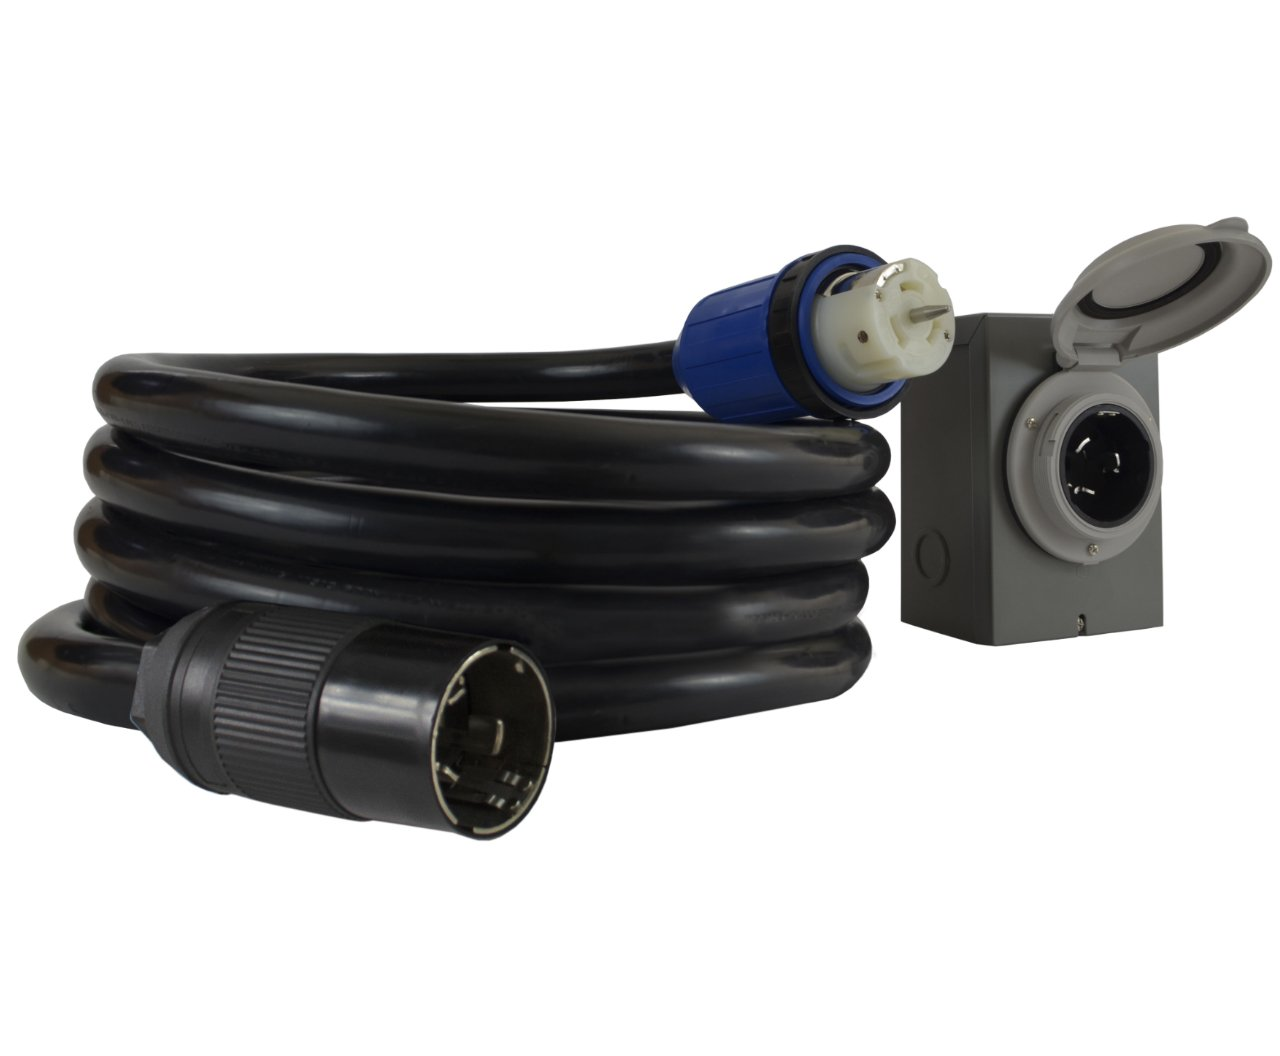 Conntek GIBSS2-015 50 Amp Duo-RainSeal Kit Locking Temporary Generator Power Cord with Inlet Box, 15' by Conntek